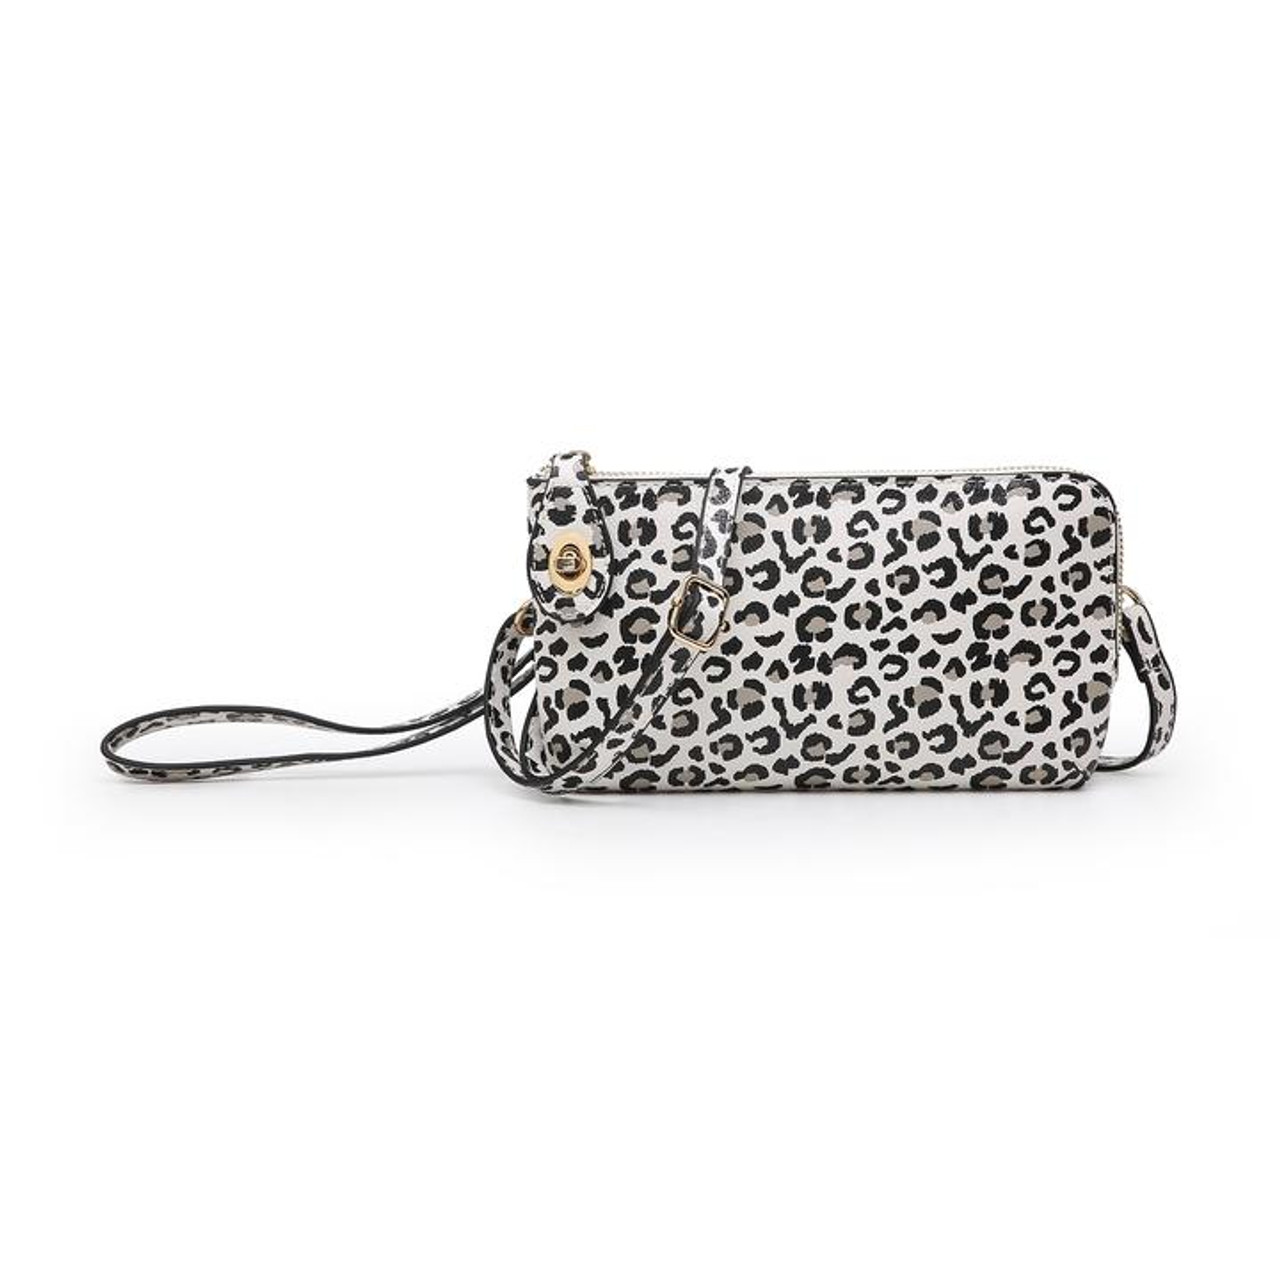 Vegan leather clutch comes with a detachable wristlet strap and an adjustable/detachable shoulder strap. Inside has 6 credit card slip pockets and a larger slip pocket on the opposite side. Zipper close opens at top and 3/4 of the way down one side and has a twist lock to secure the zipper pull.